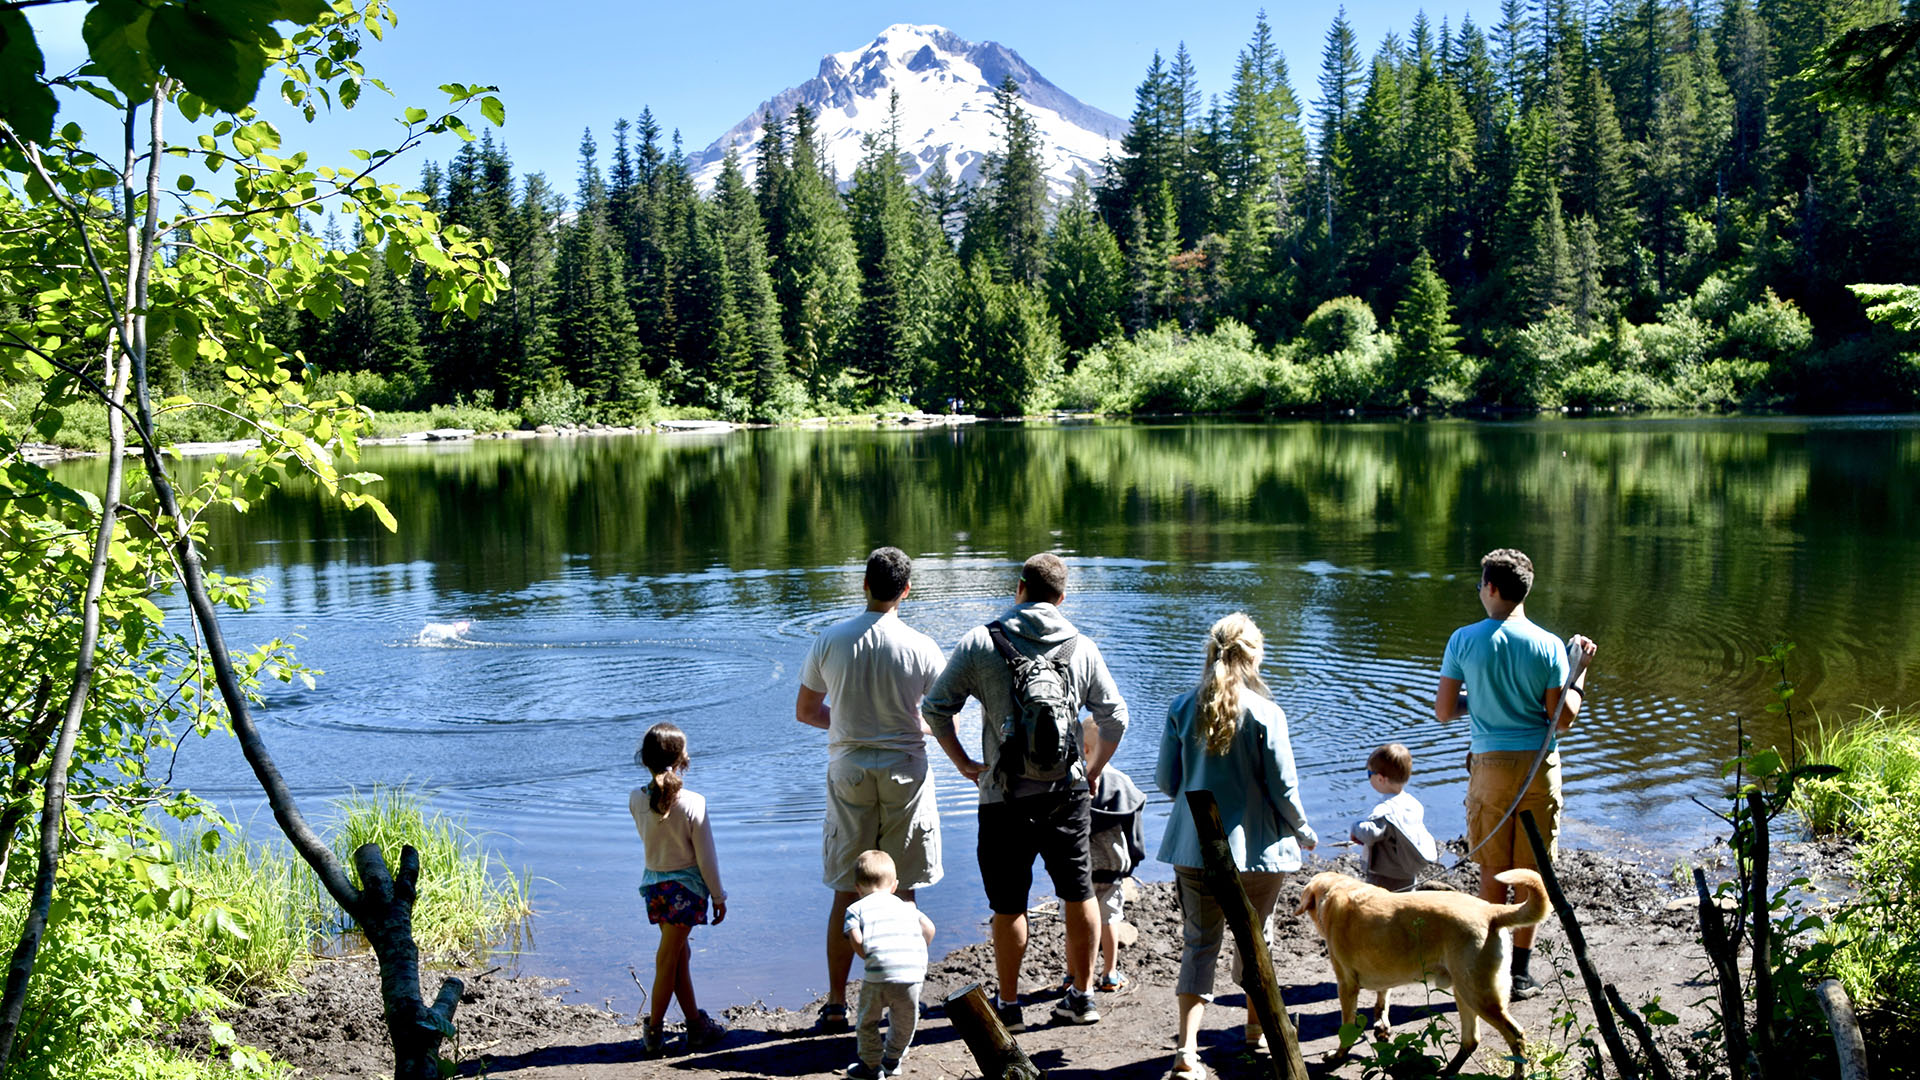 A family skips rocks in Mirror Lake, disrupting the reflection of Mt. Hood.